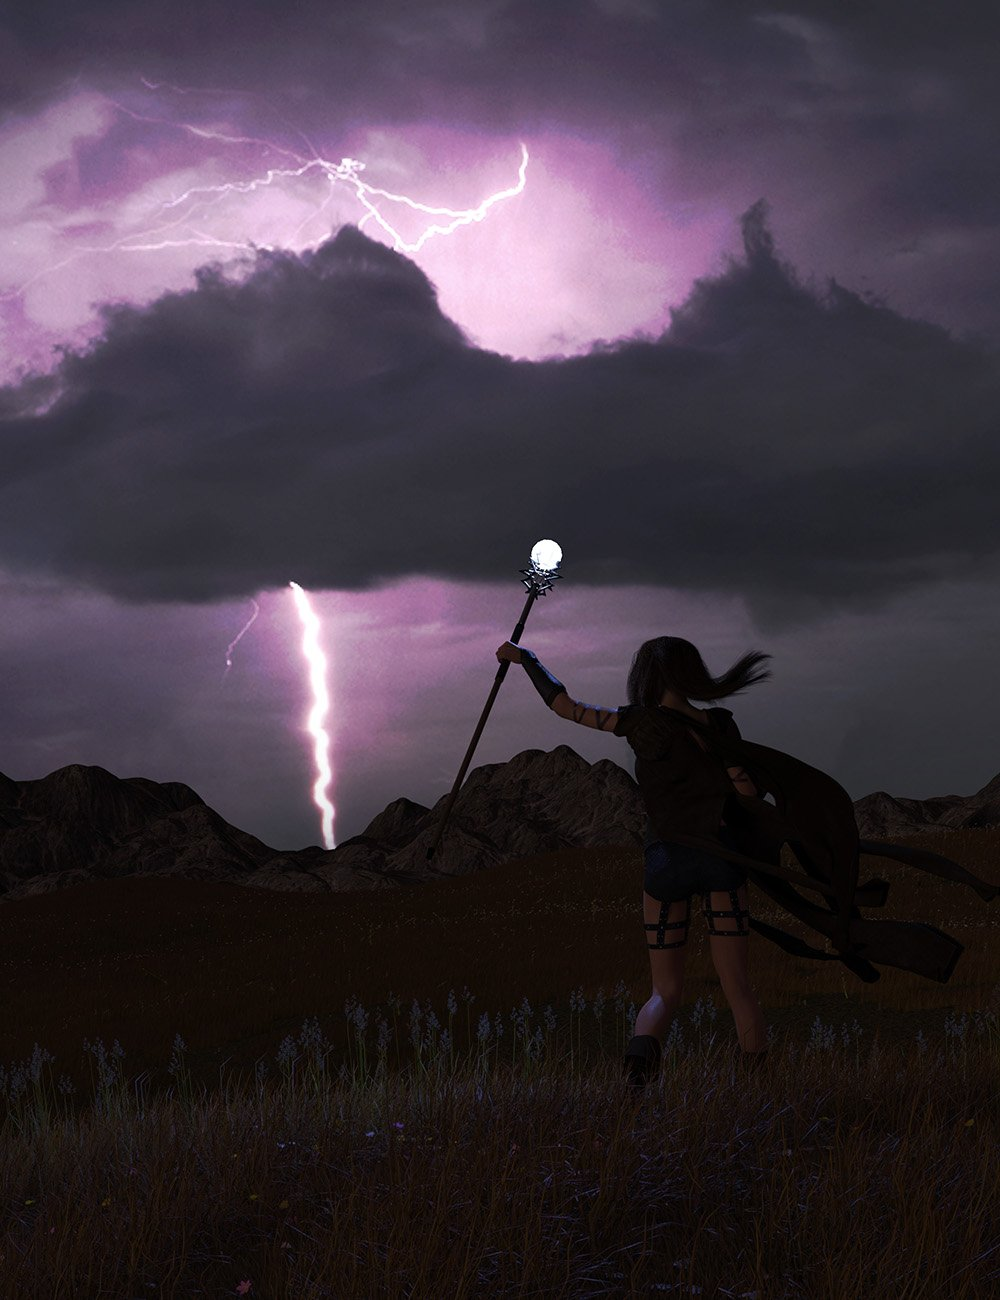 Orestes Iray HDRI Skydomes - Night Storms by: Orestes Graphics, 3D Models by Daz 3D